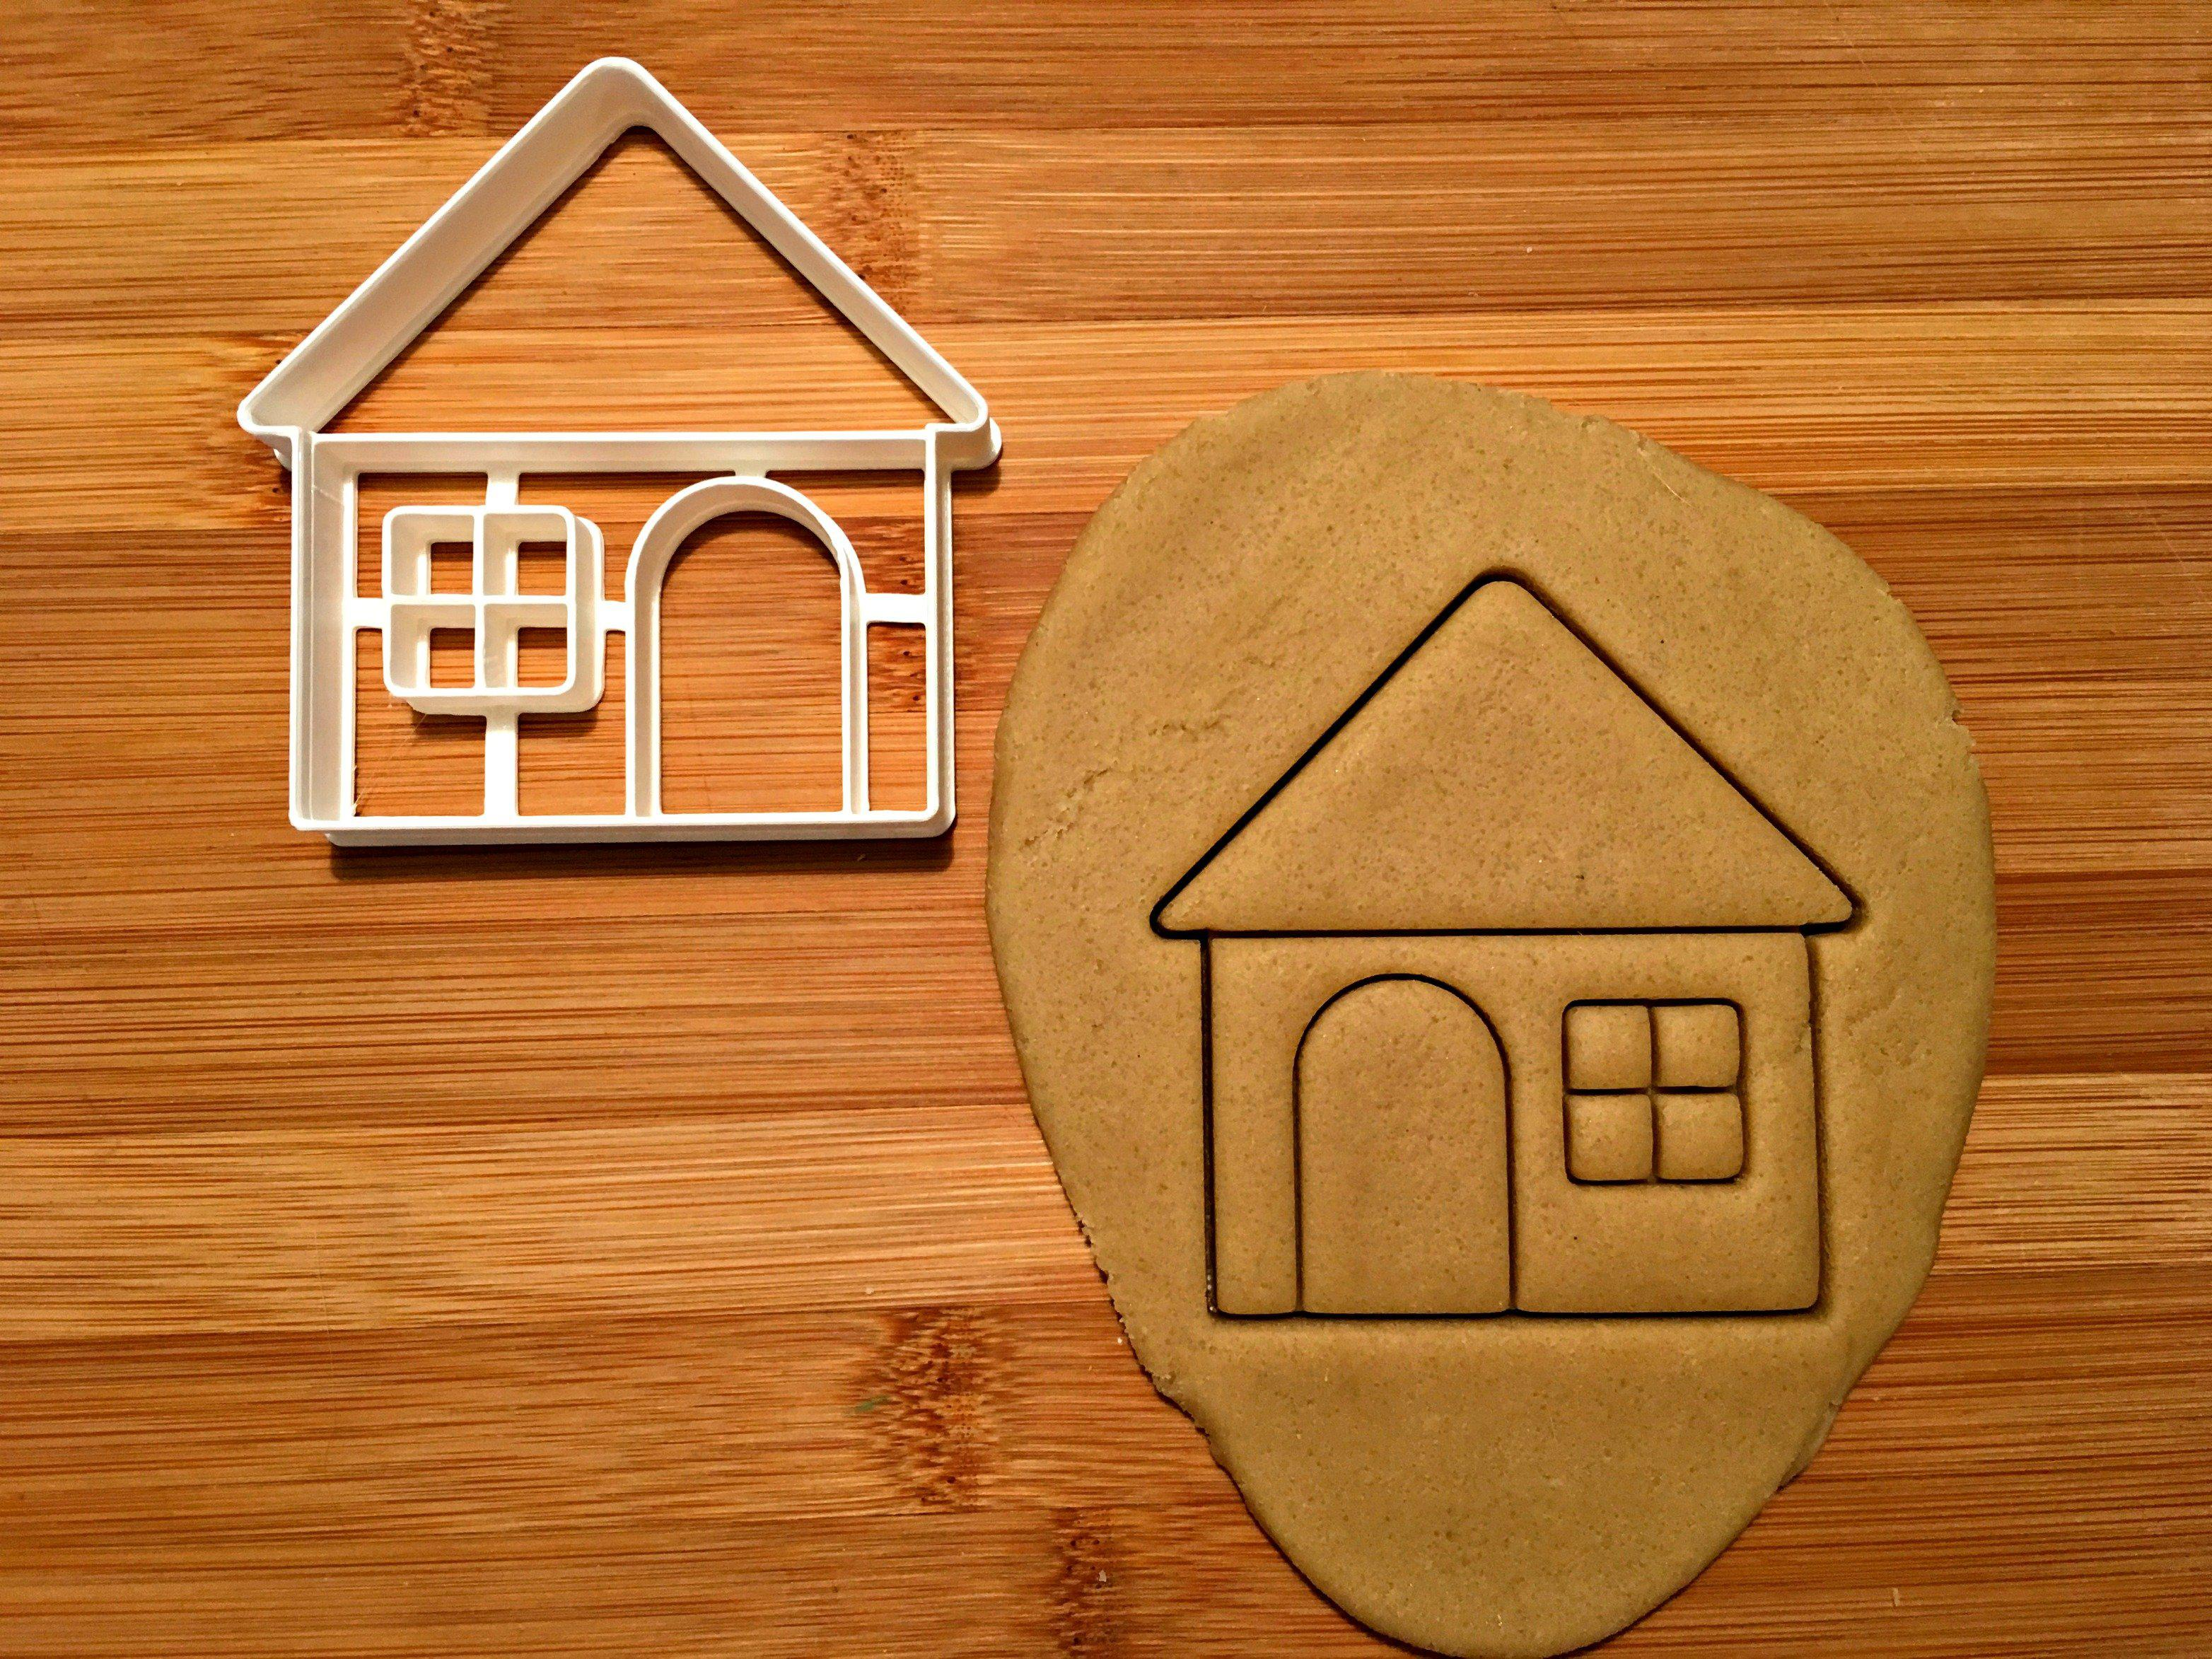 House Cookie Cutter/Dishwasher Safe